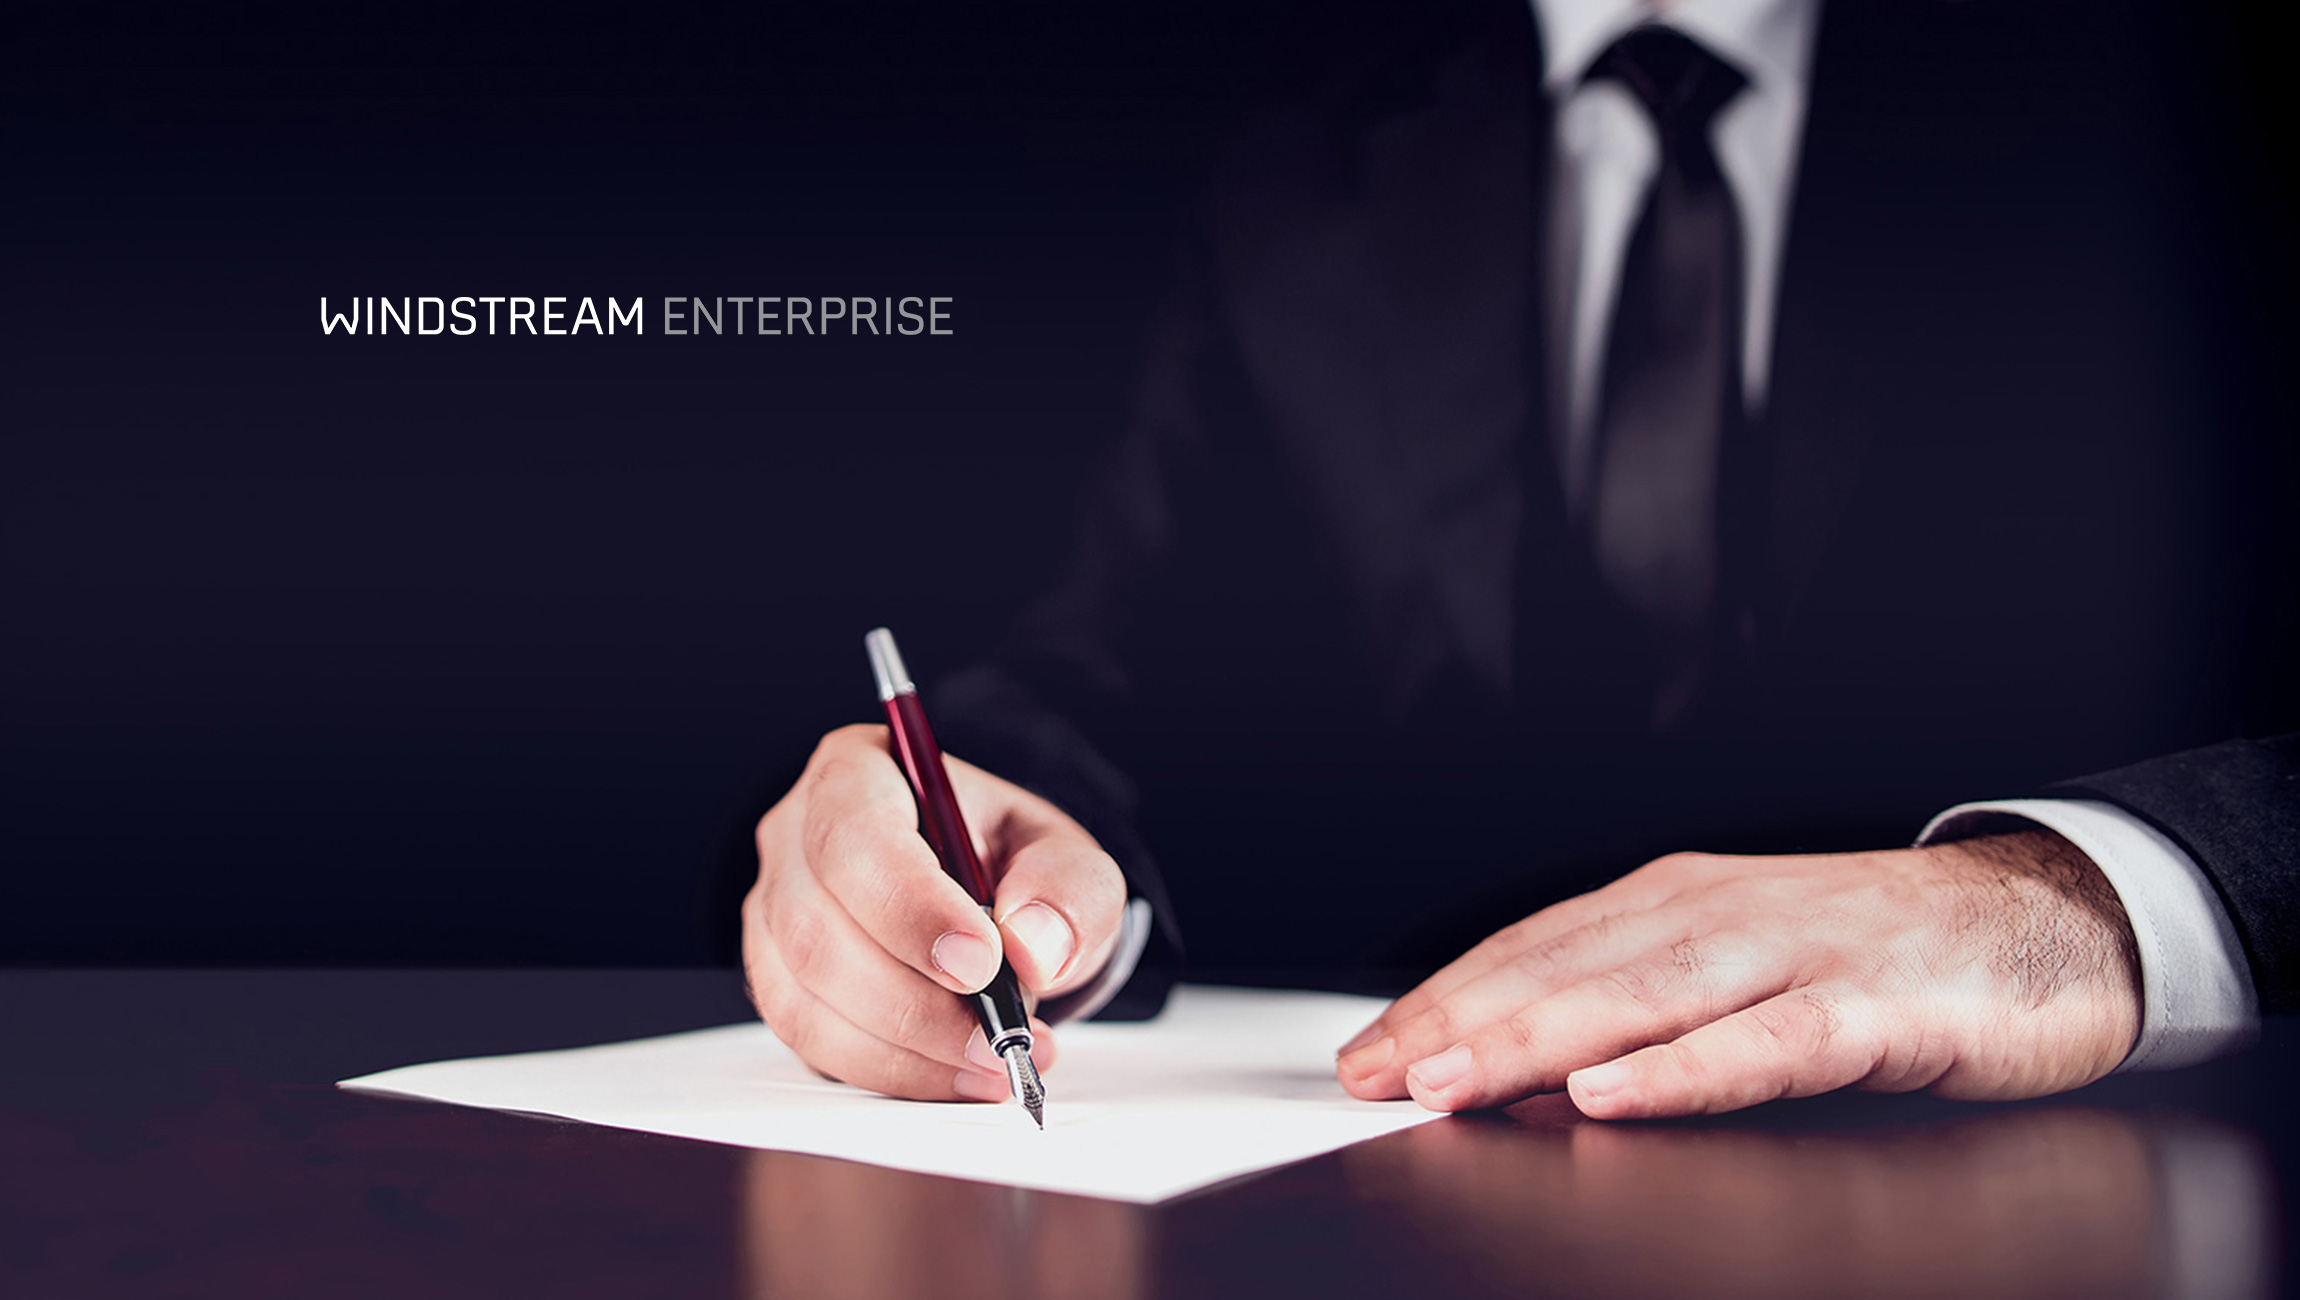 Windstream Enterprise Named Partner of the Year by Mitel for Continued UCaaS Leadership